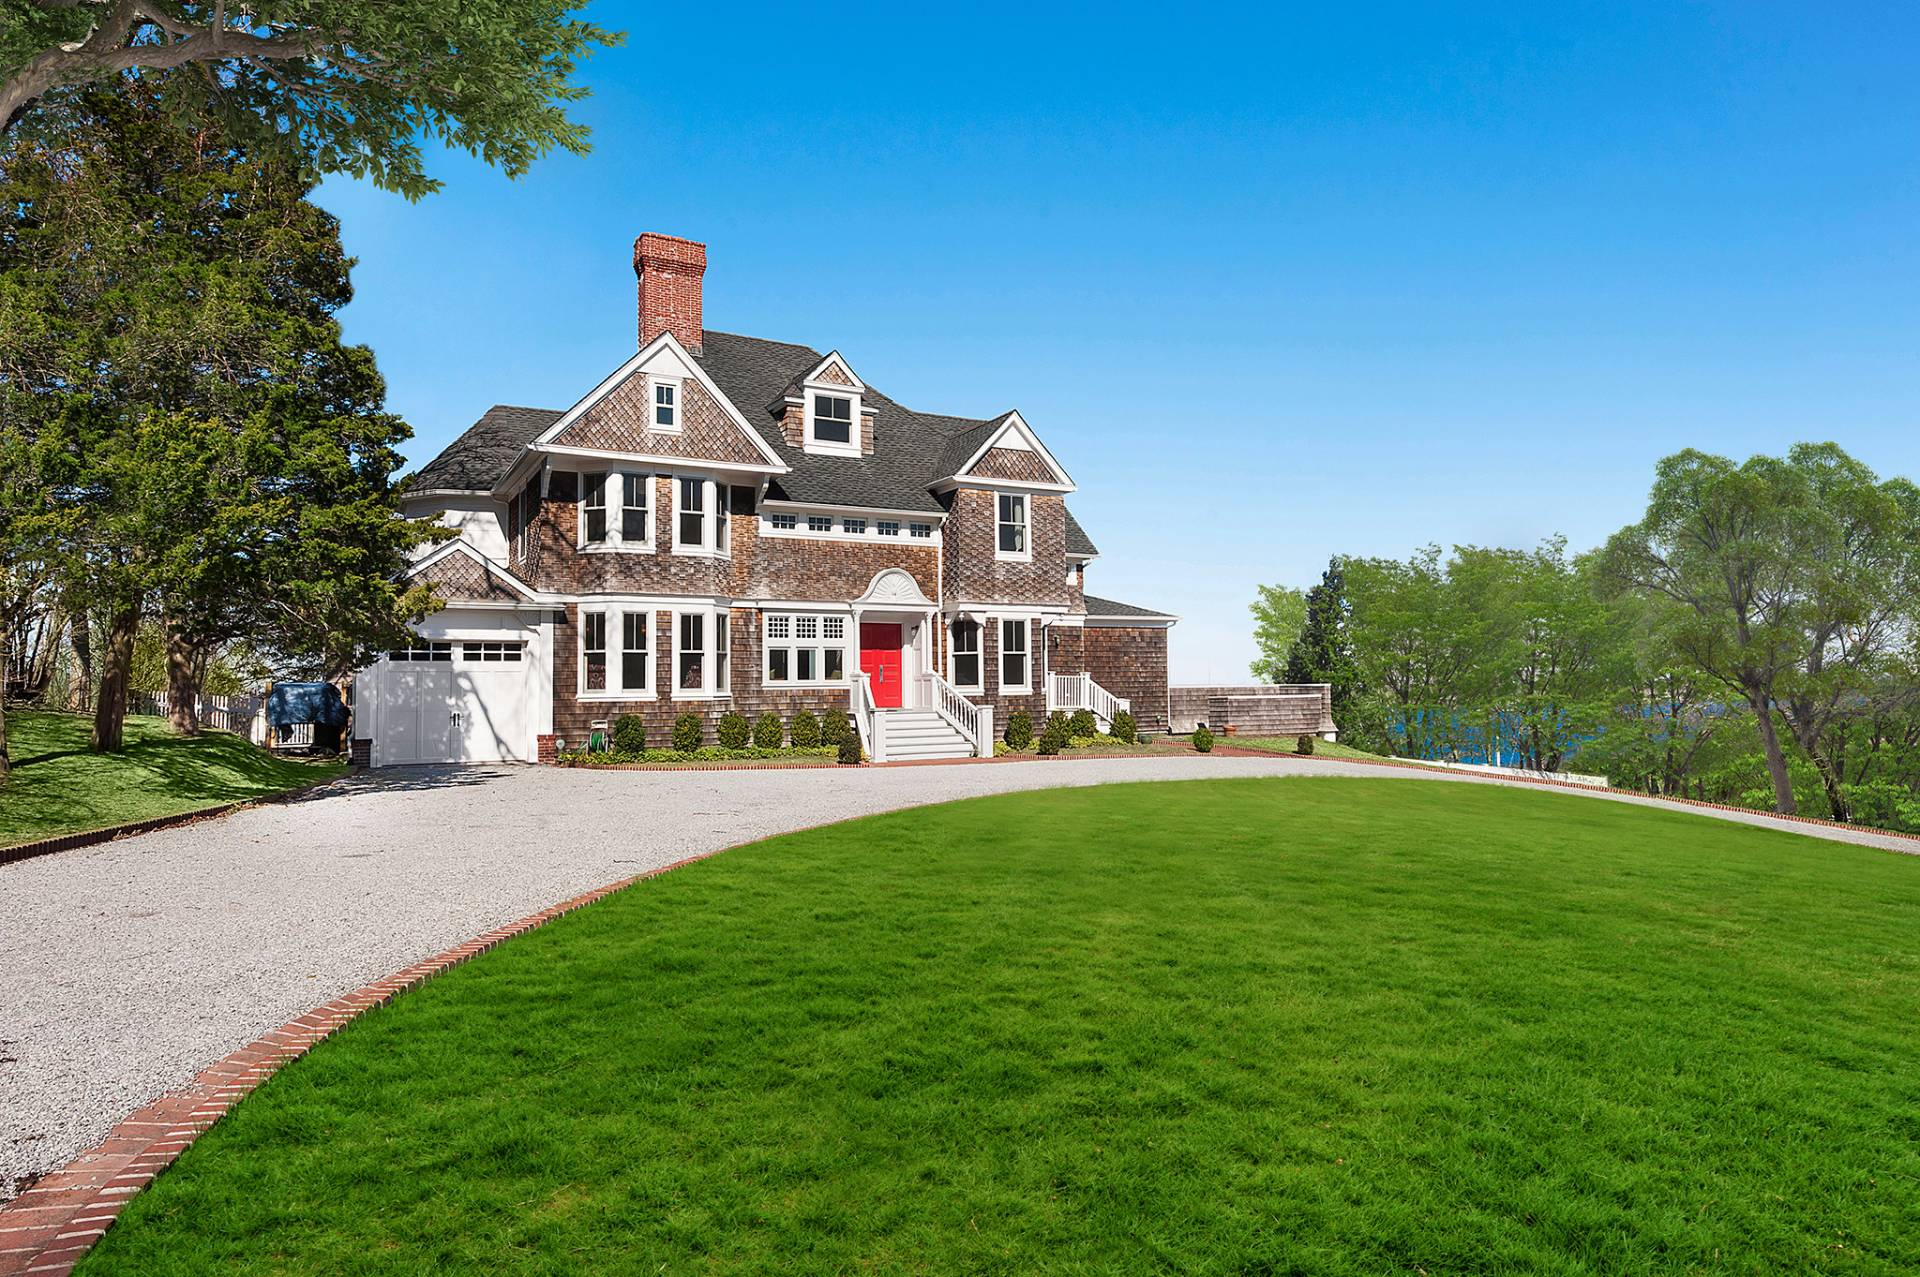 Single Family Home for Sale at Iconic 1884 Shelter Island Heights Seacoast Estate 22 Prospect Avenue, Shelter Island, New York